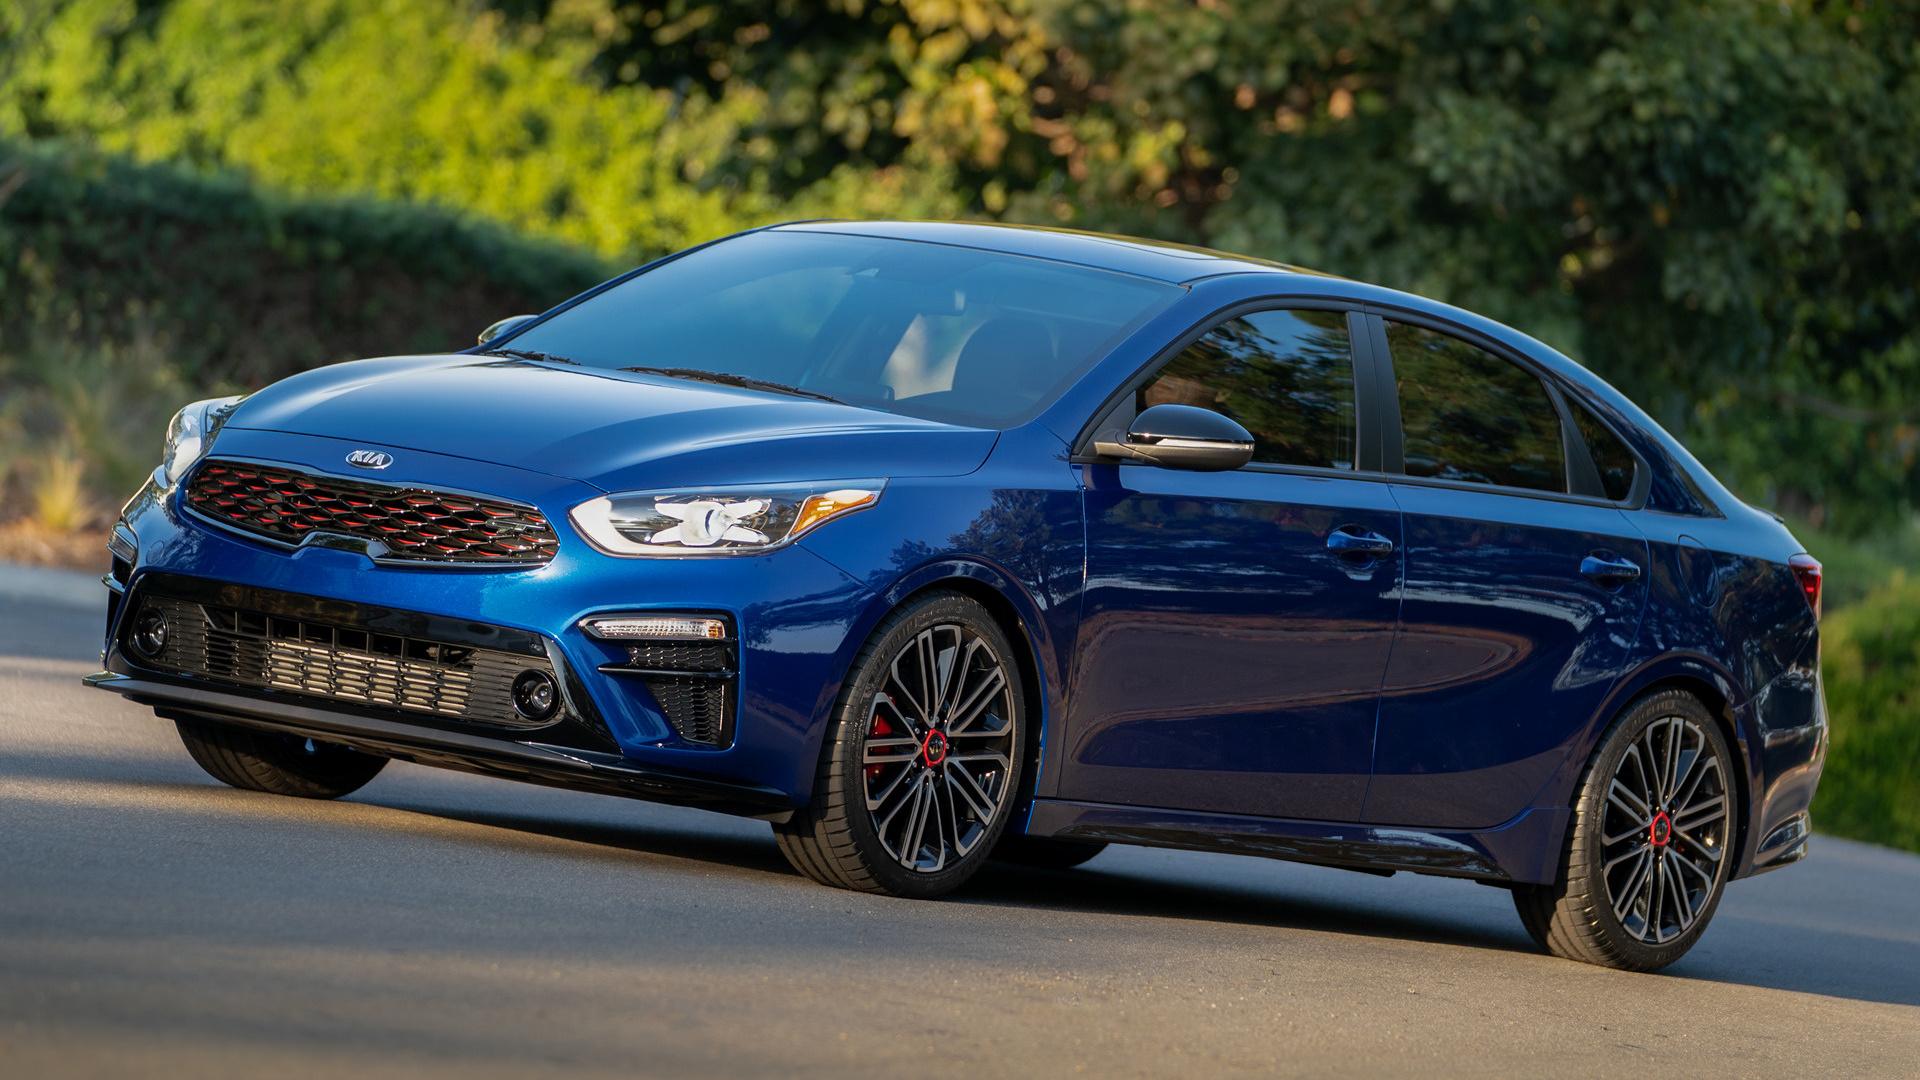 2020 kia forte gt  wallpapers and hd images  car pixel